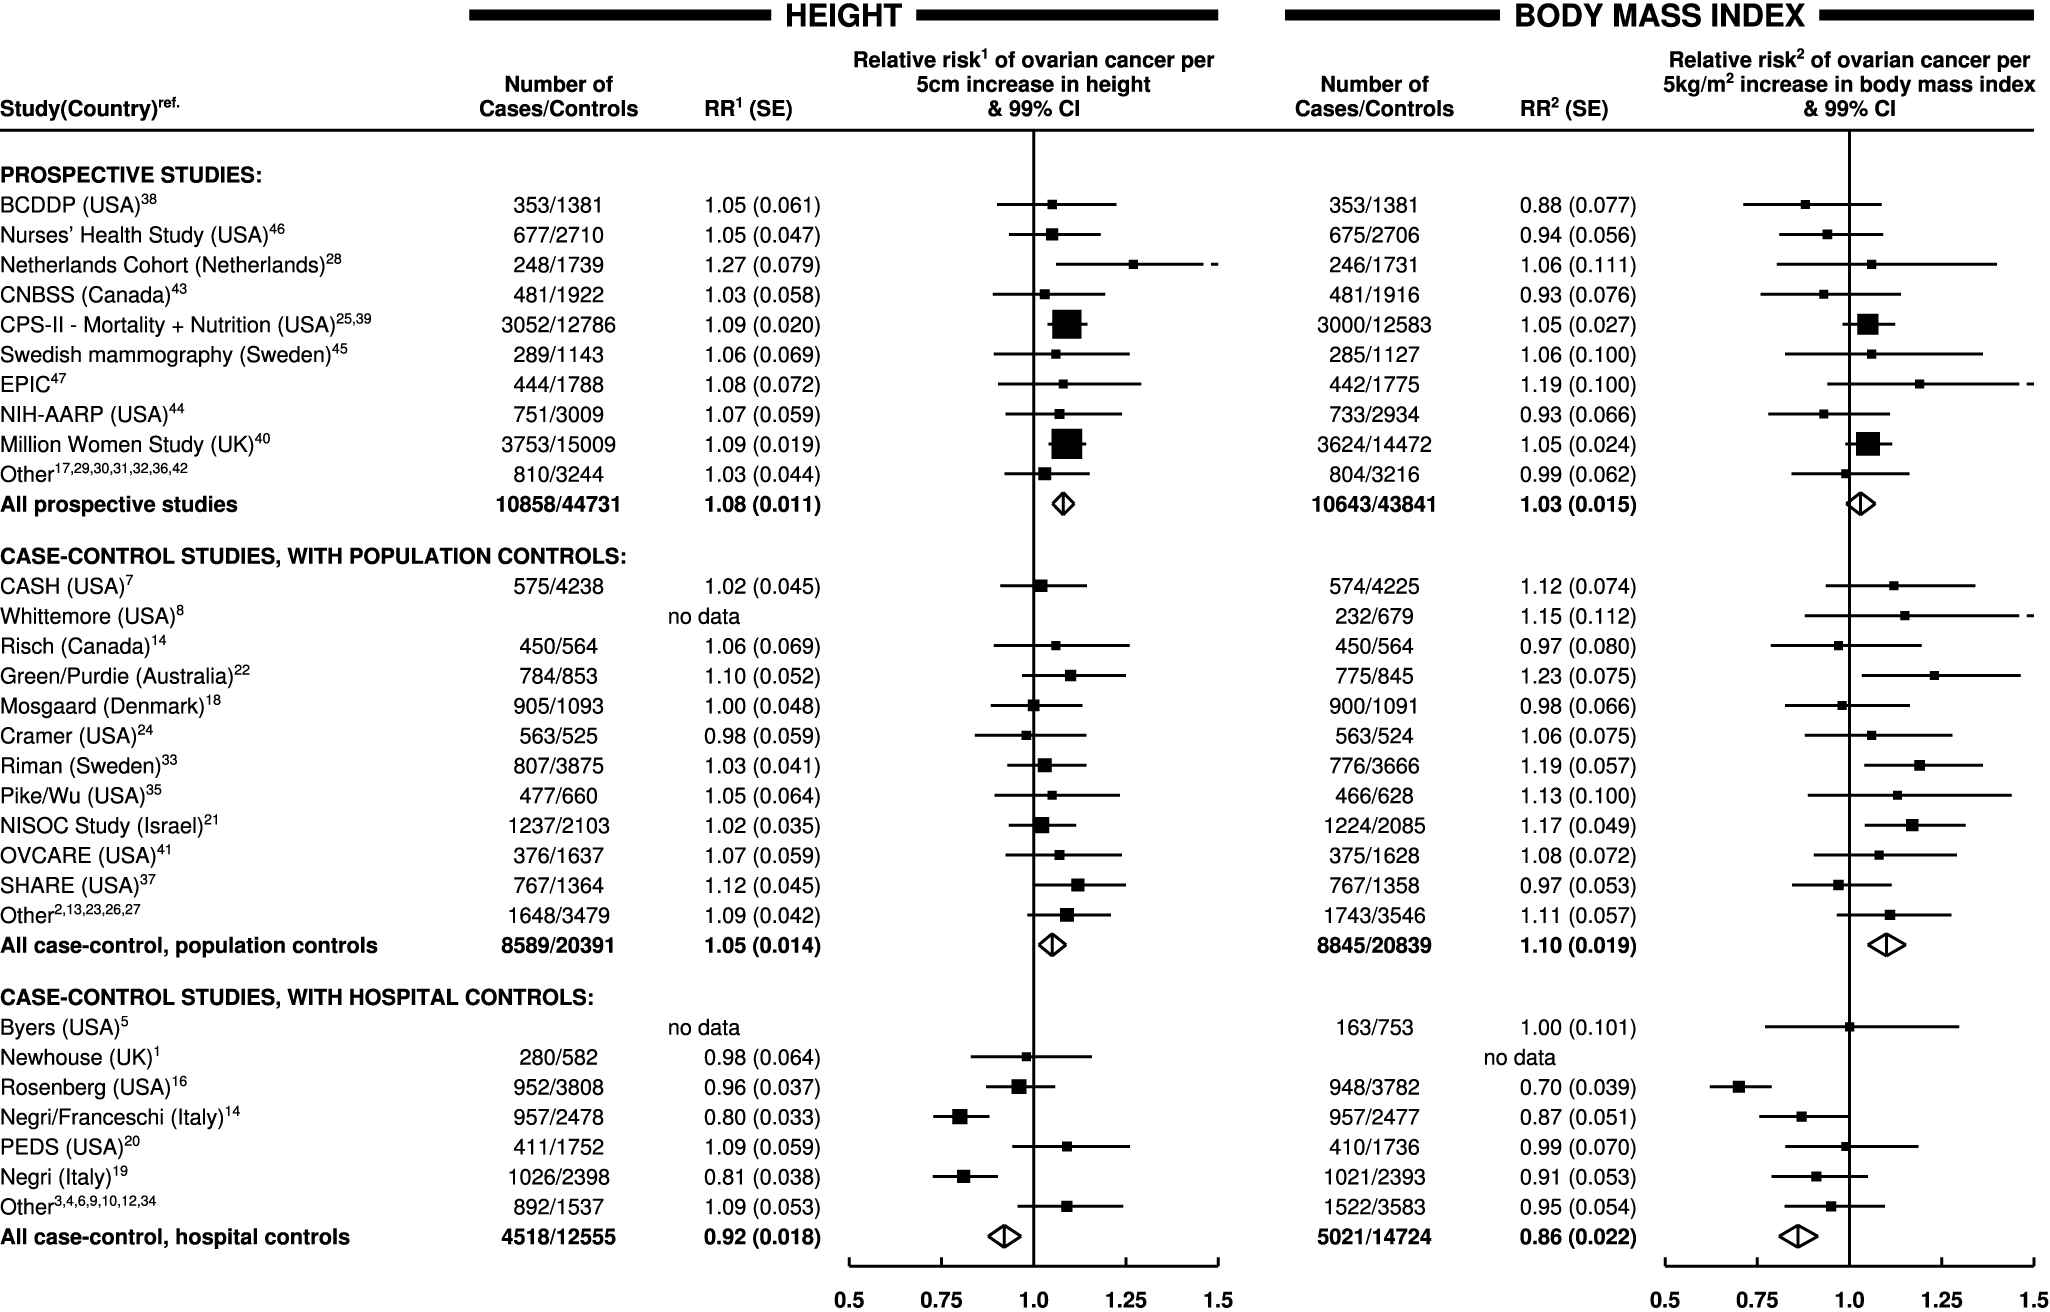 Relative risk of ovarian cancer in relation to height and body mass index by study.